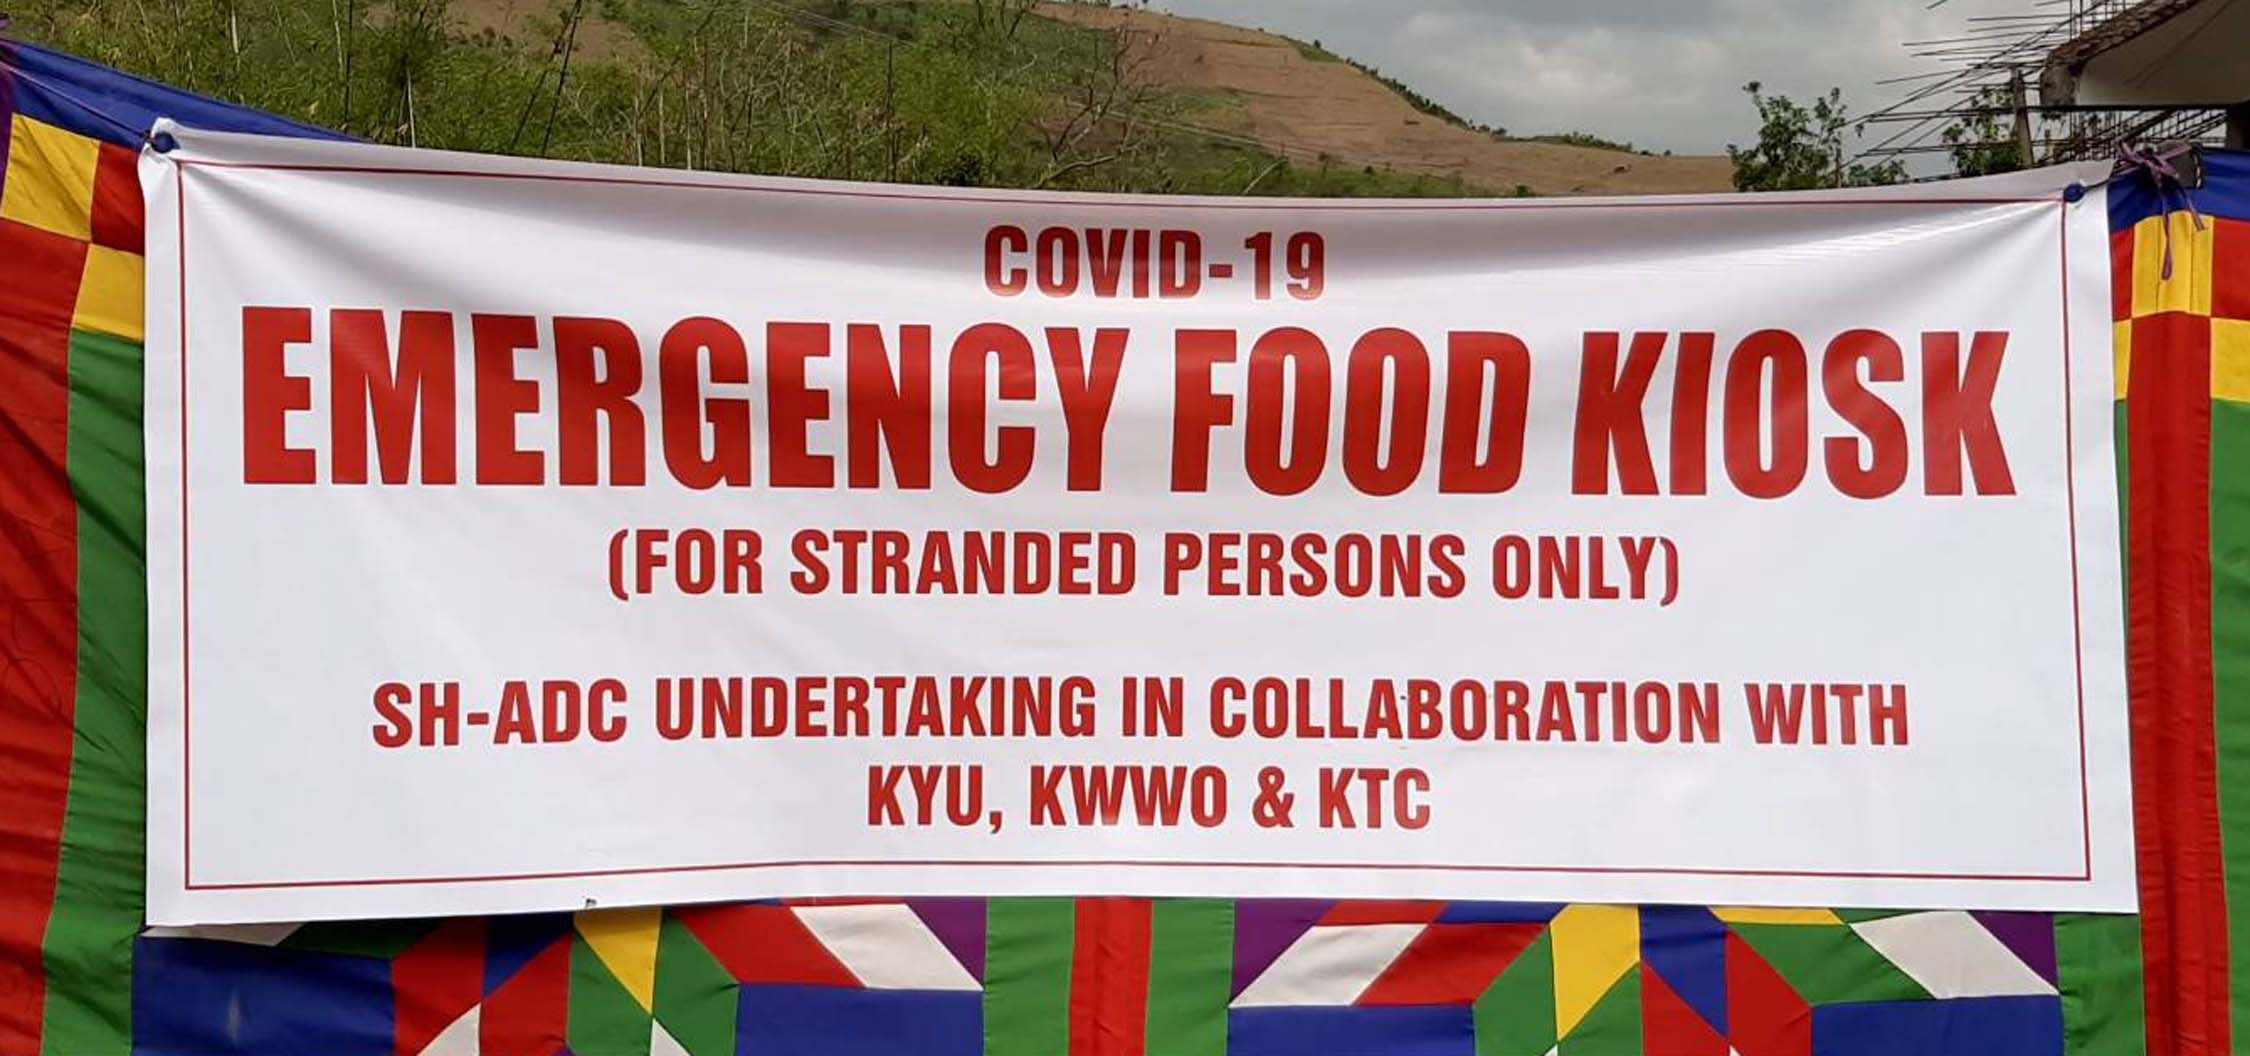 Returning stranded Kpi people to be served food at DHQs